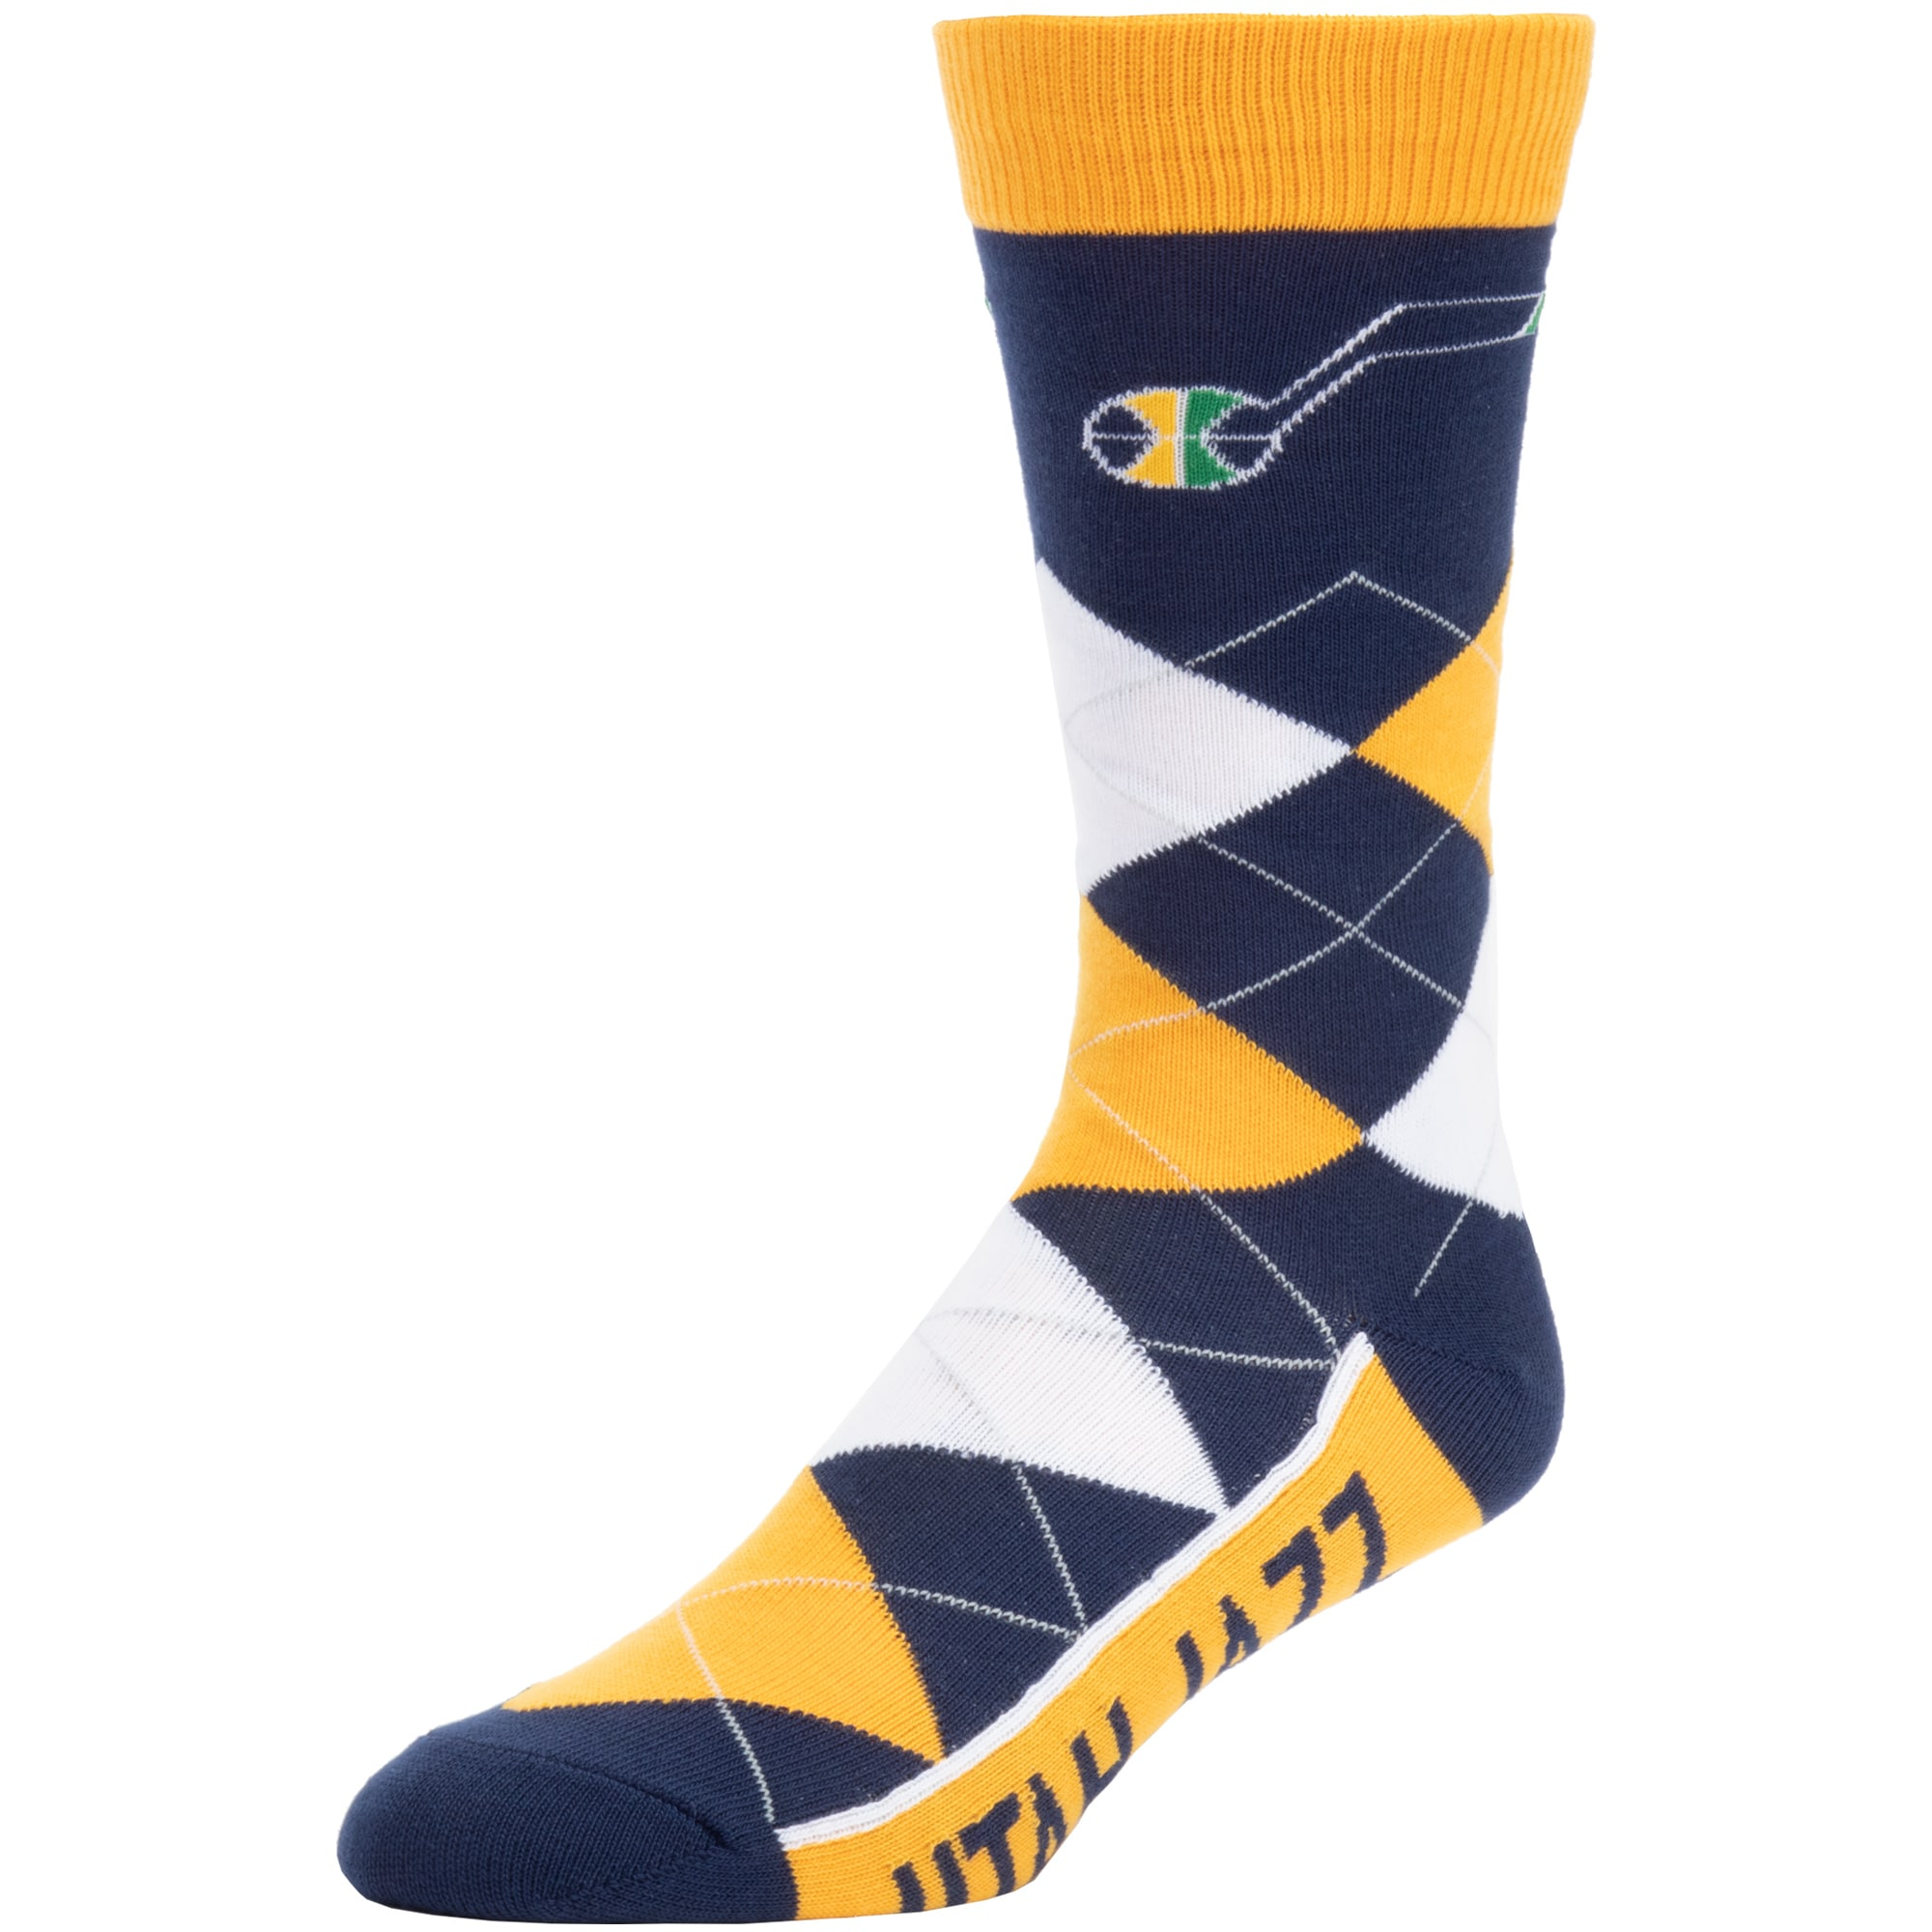 Utah Jazz For Bare Feet Team Argyle Crew Socks